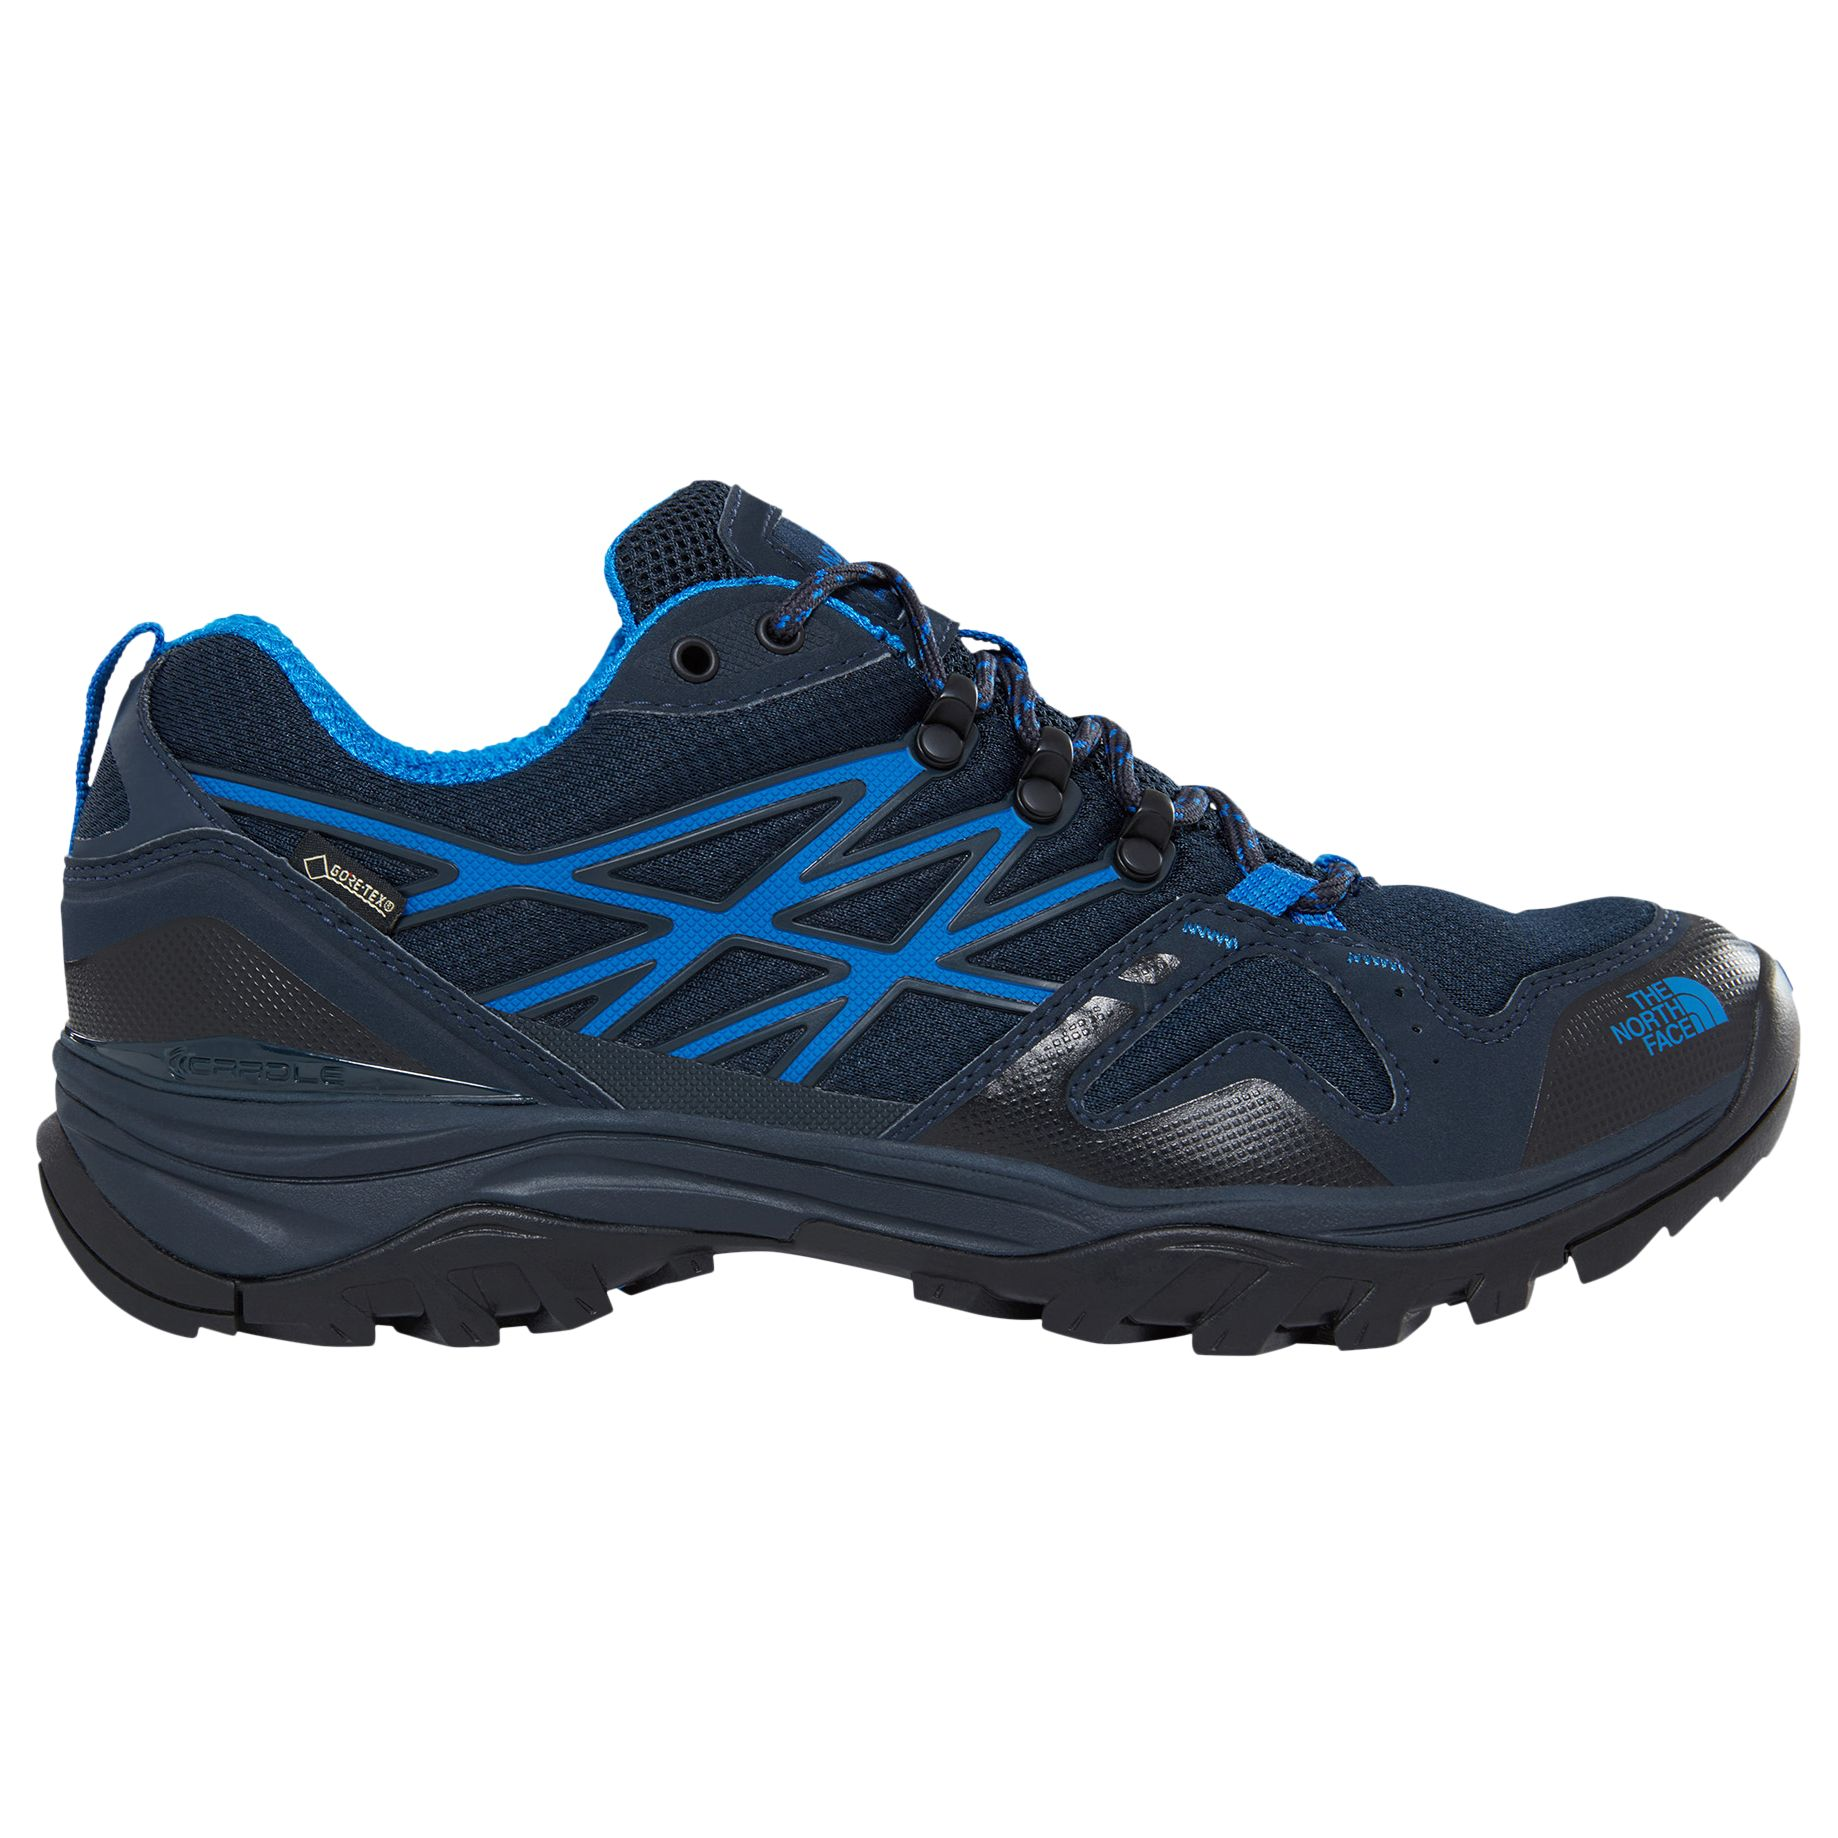 b9127189b The North Face Fastpack GORE-TEX Men's Hiking Shoes, Navy at John ...